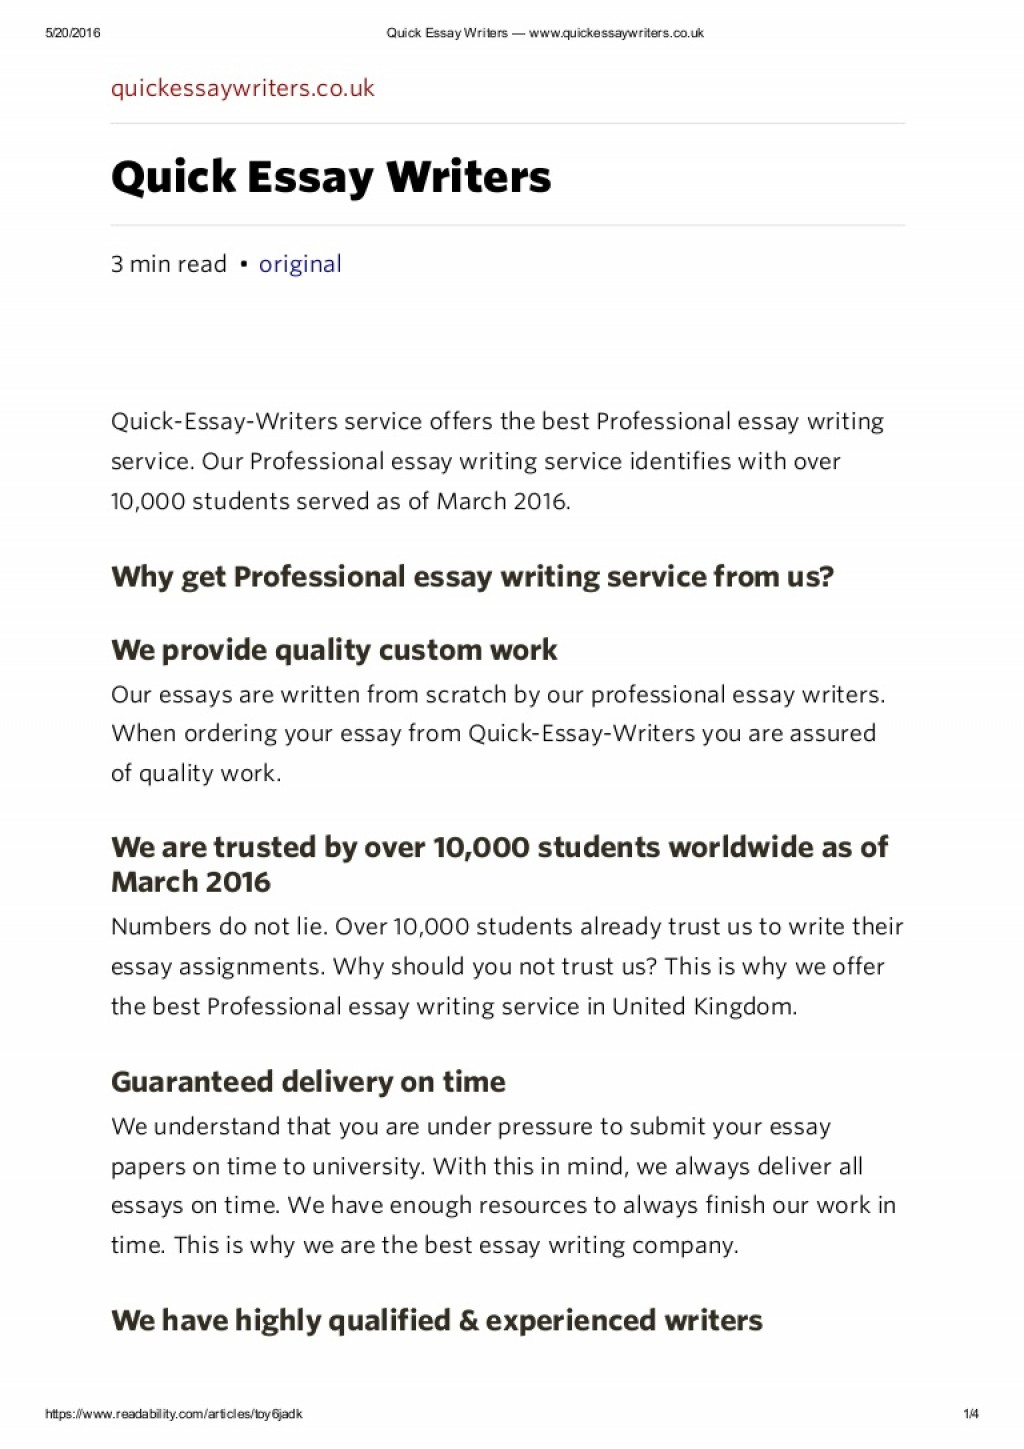 005 Essay Writers Uk Example Professionalessaywritingservicequickessaywriterswww Thumbnail Impressive Large